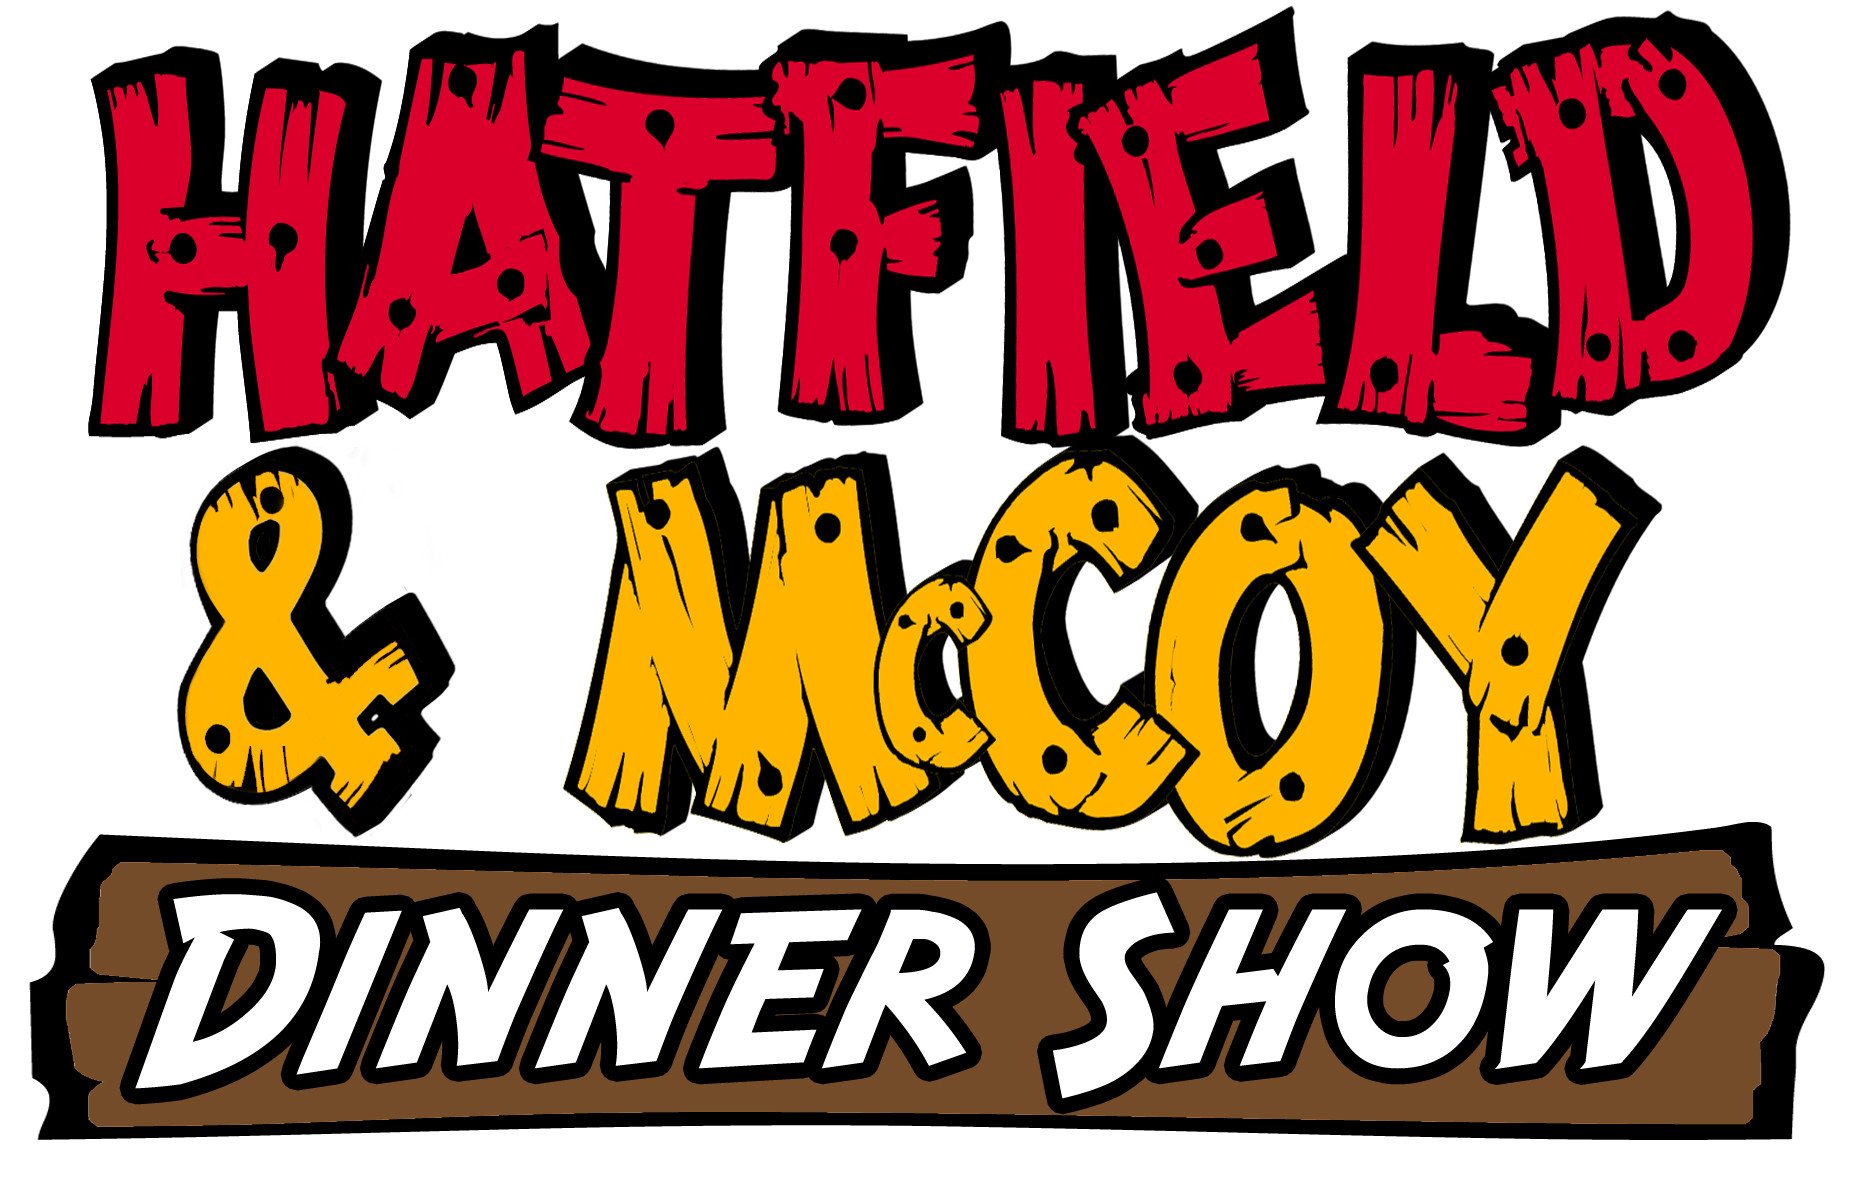 Hatfield & Mccoy Dinner Show  Hatfield & McCoy Dinner Show at Pigeon Forge Tennessee